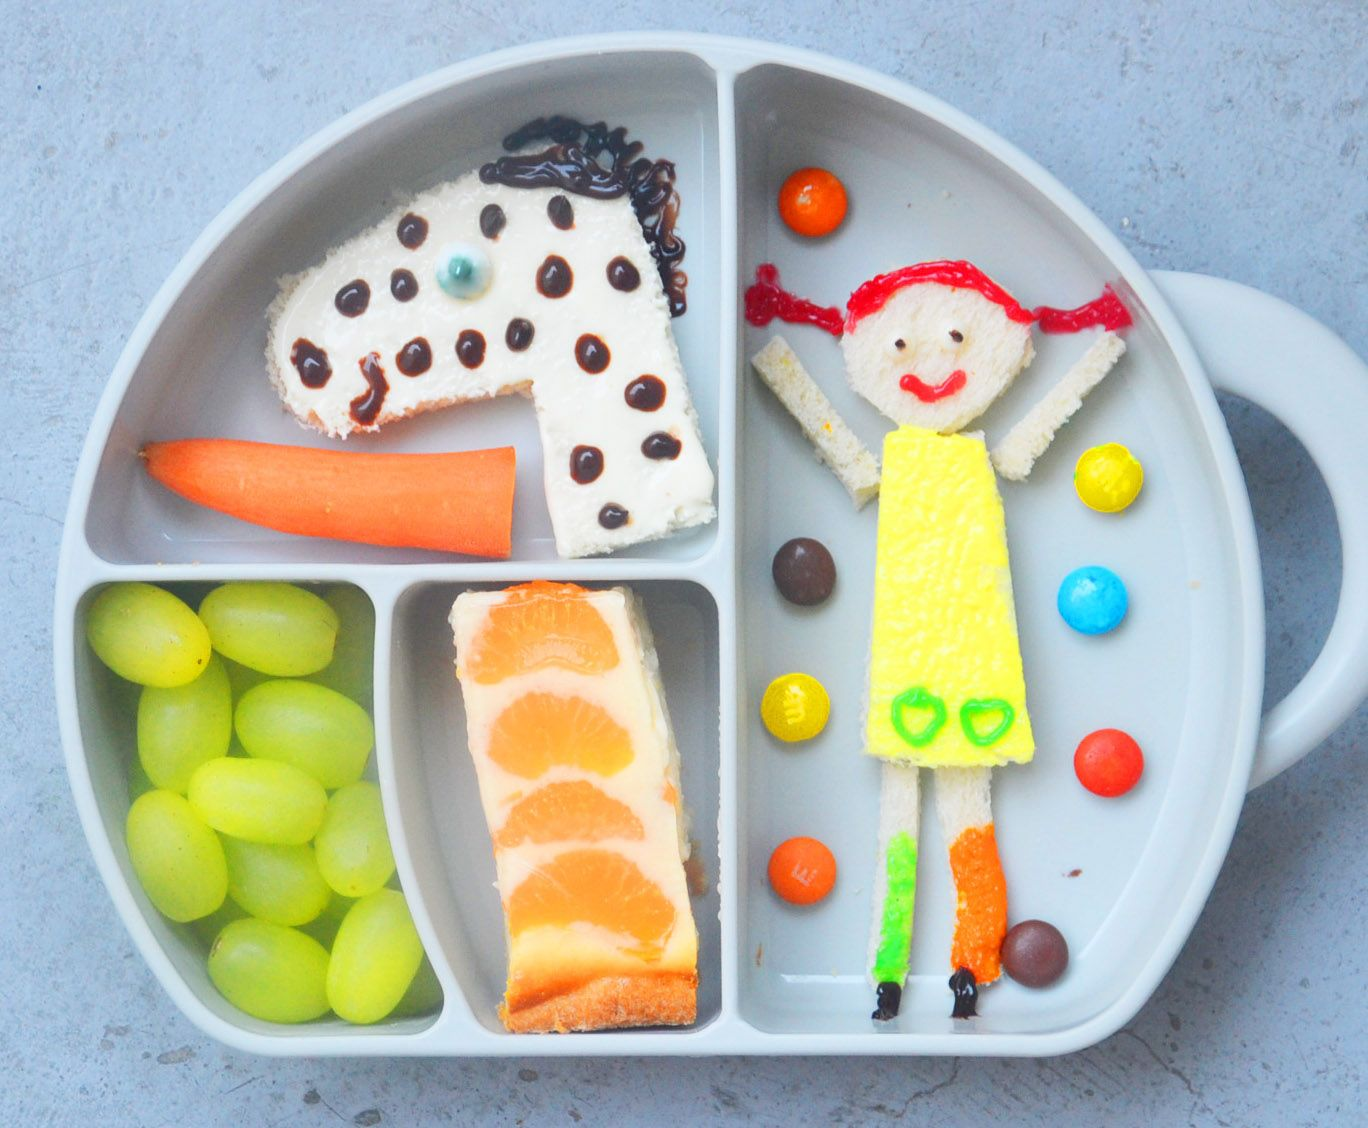 Brotbox Kinder Pipi Langstrumpf Bentobox Bentobox Ideas Brotdose Mal